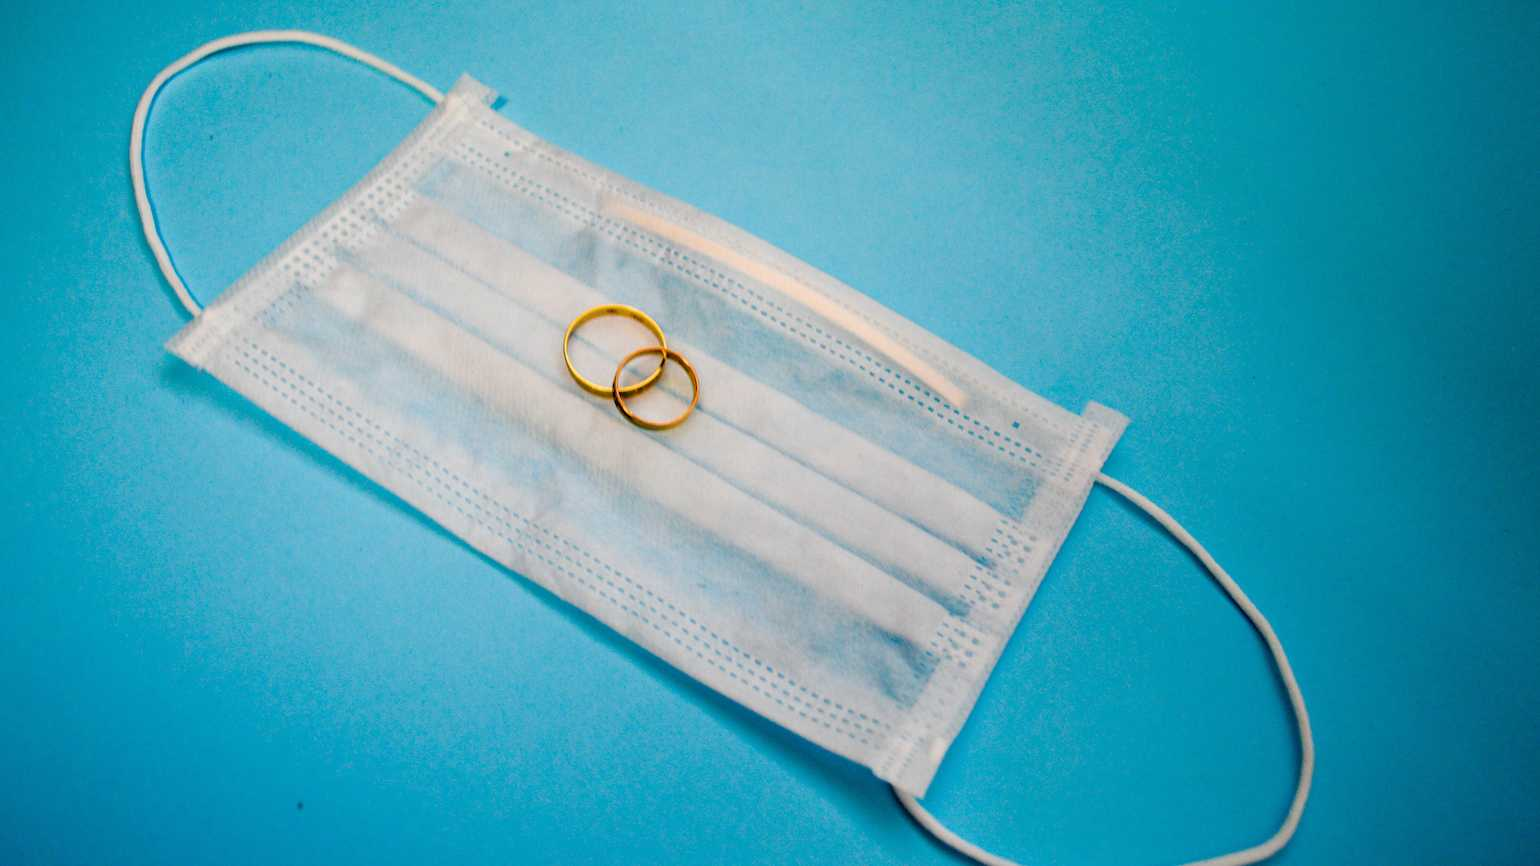 Getting married in a pandemic